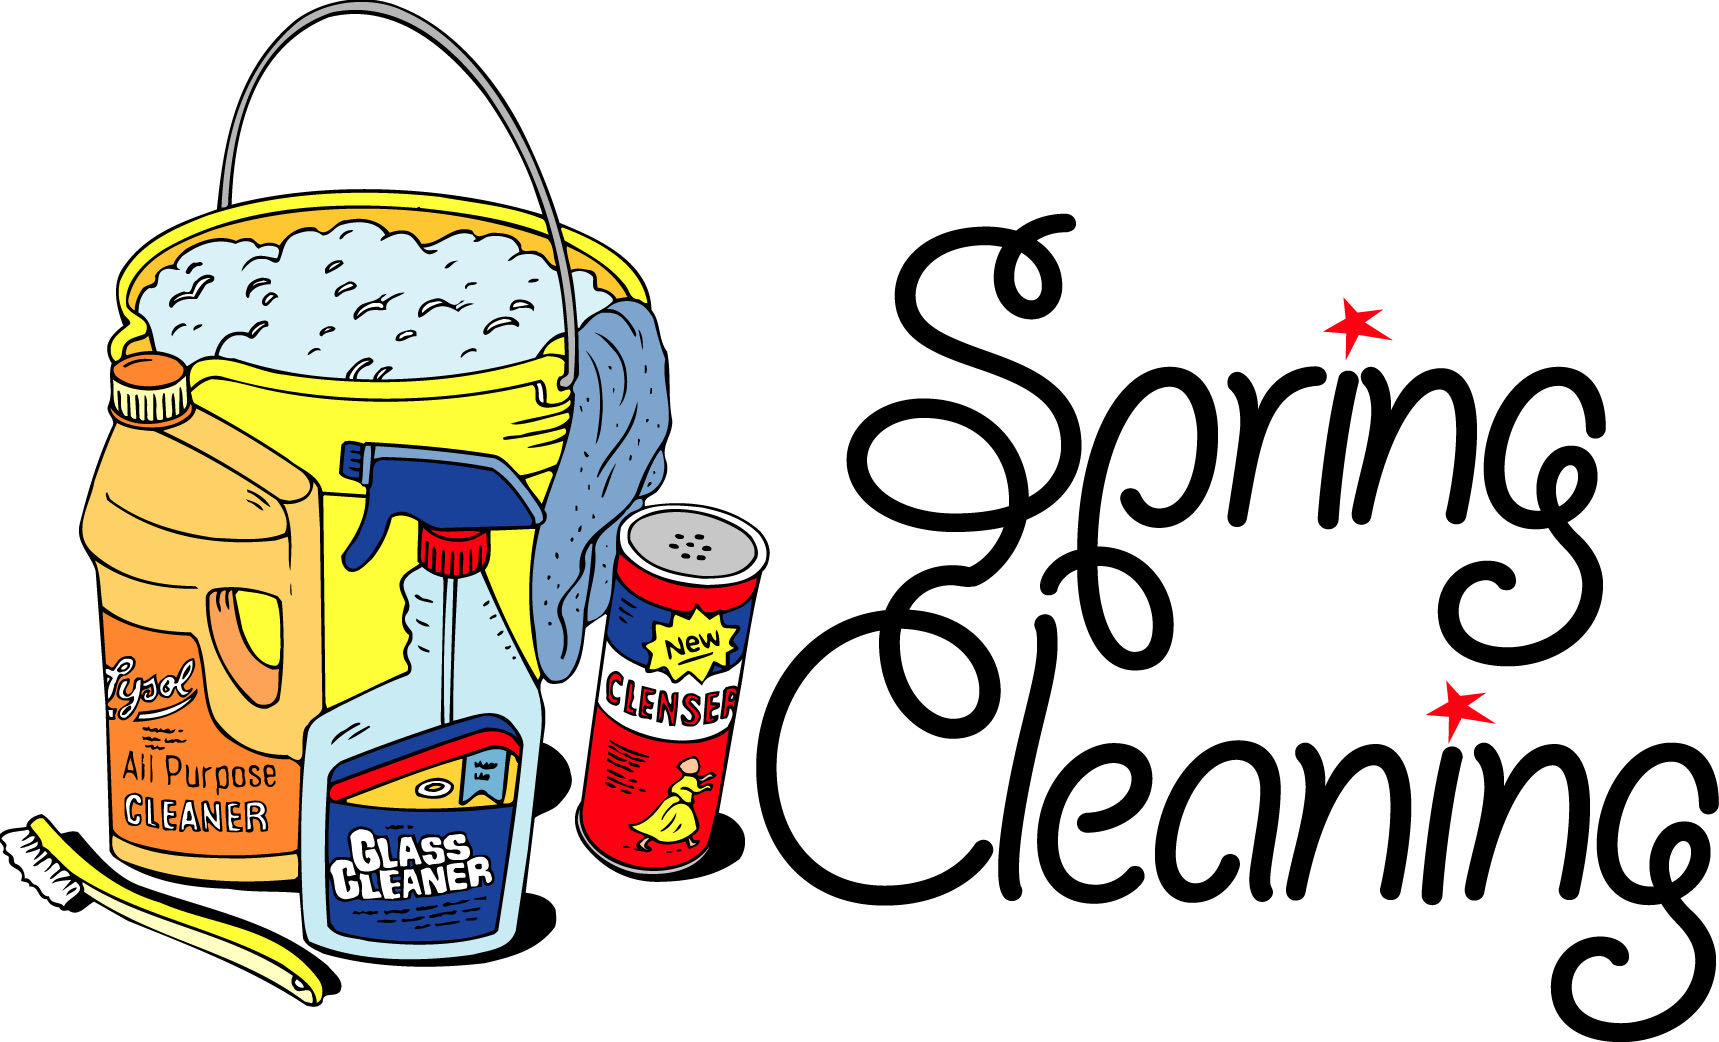 Cleaning clip art images free clipart images.